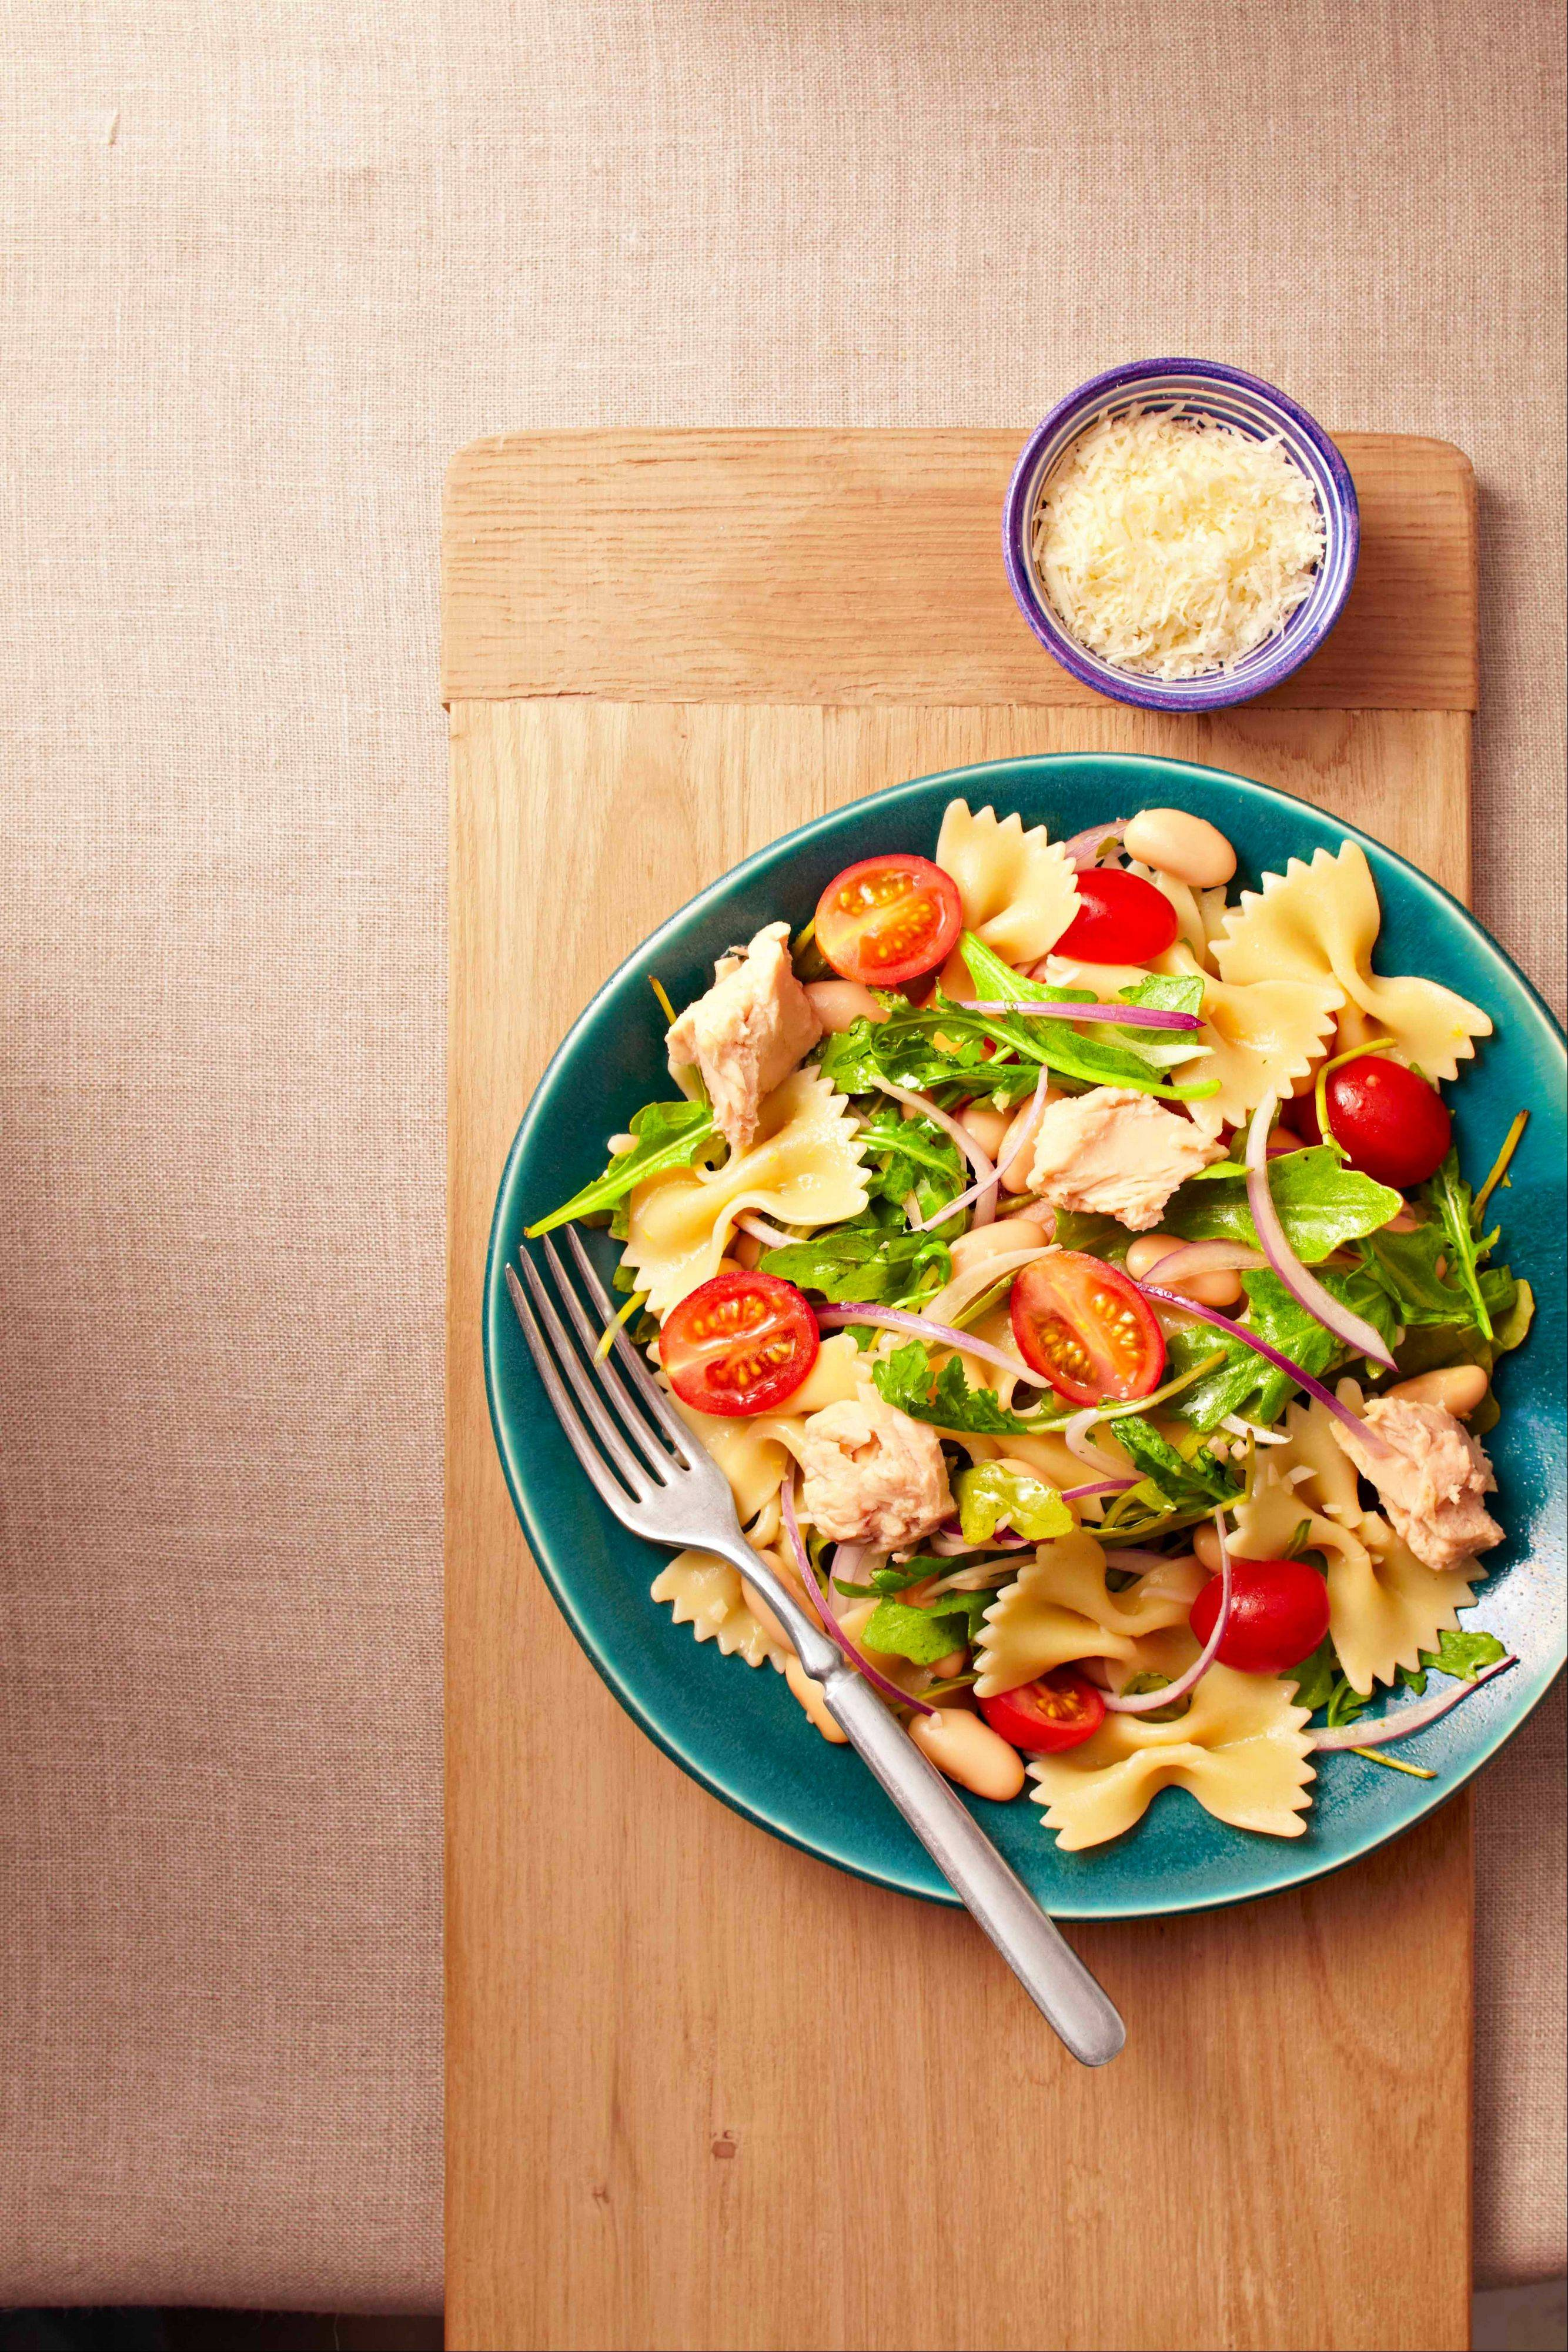 Lemony Pasta Salad gets a protein boost from albacore tuna.